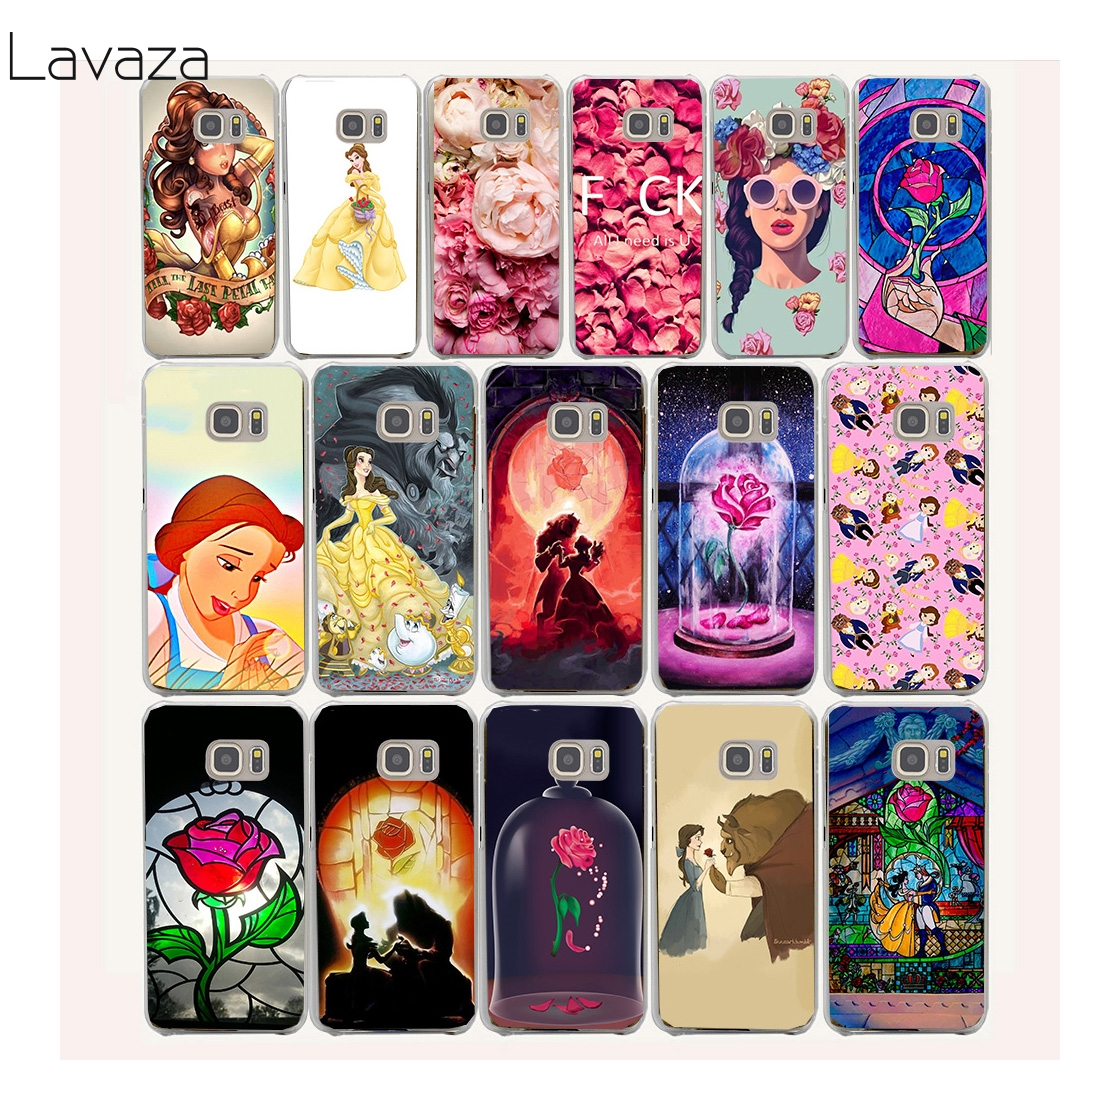 Belle s Beauty and the Beast Hard Transparent Case Cover for Galaxy S3 S4 S5 & Mini S6 S7 Edge Plus Case Cover